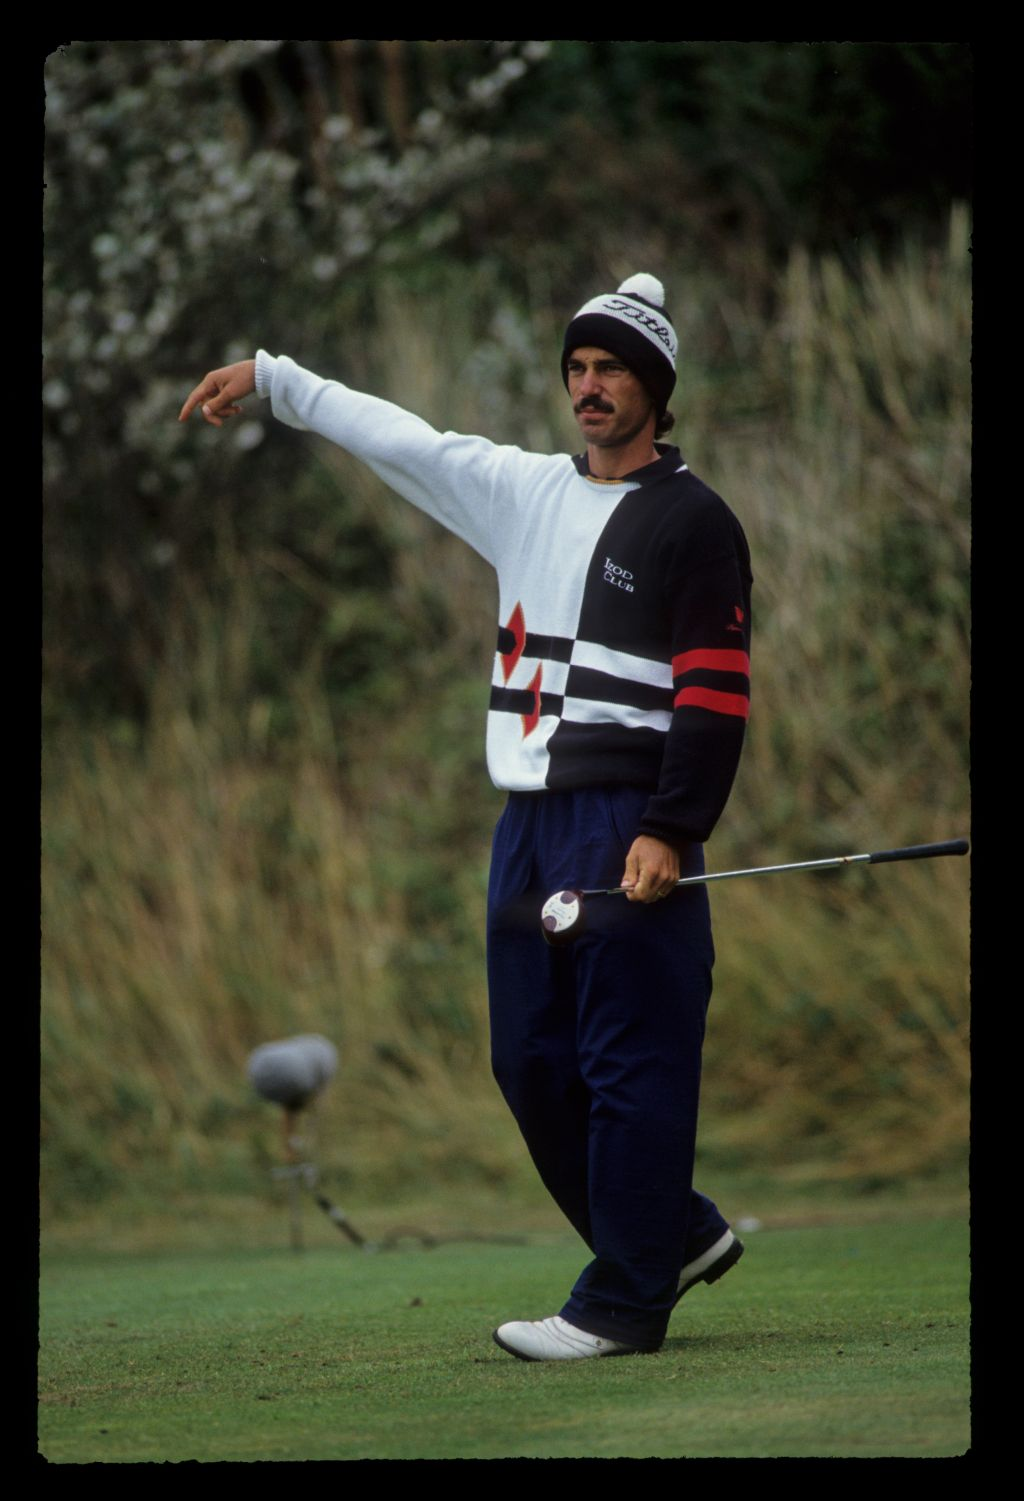 Corey Pavin gesturing from the tee during the 1991 Open Championship